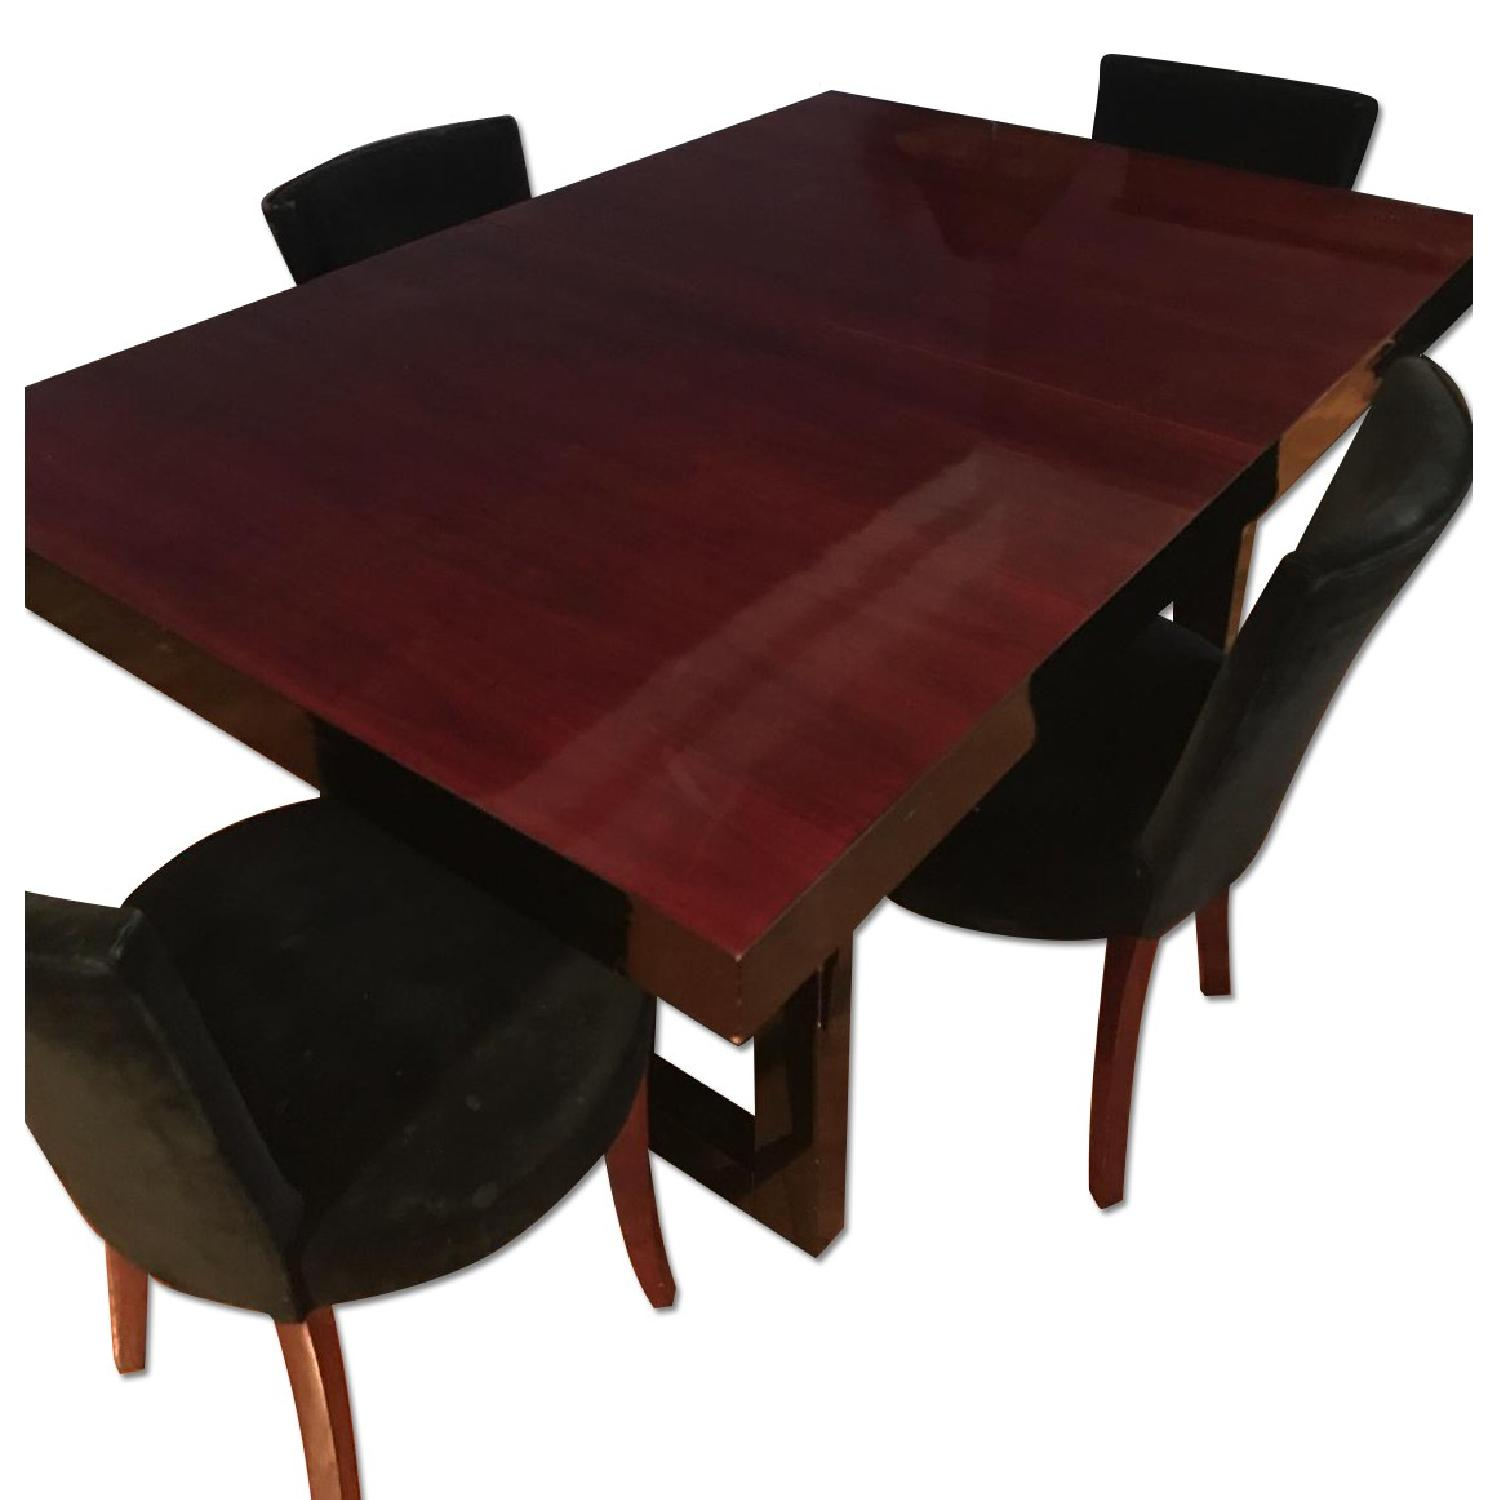 Depression Modern Extendable Dining Table w/ 4 Chairs - image-0